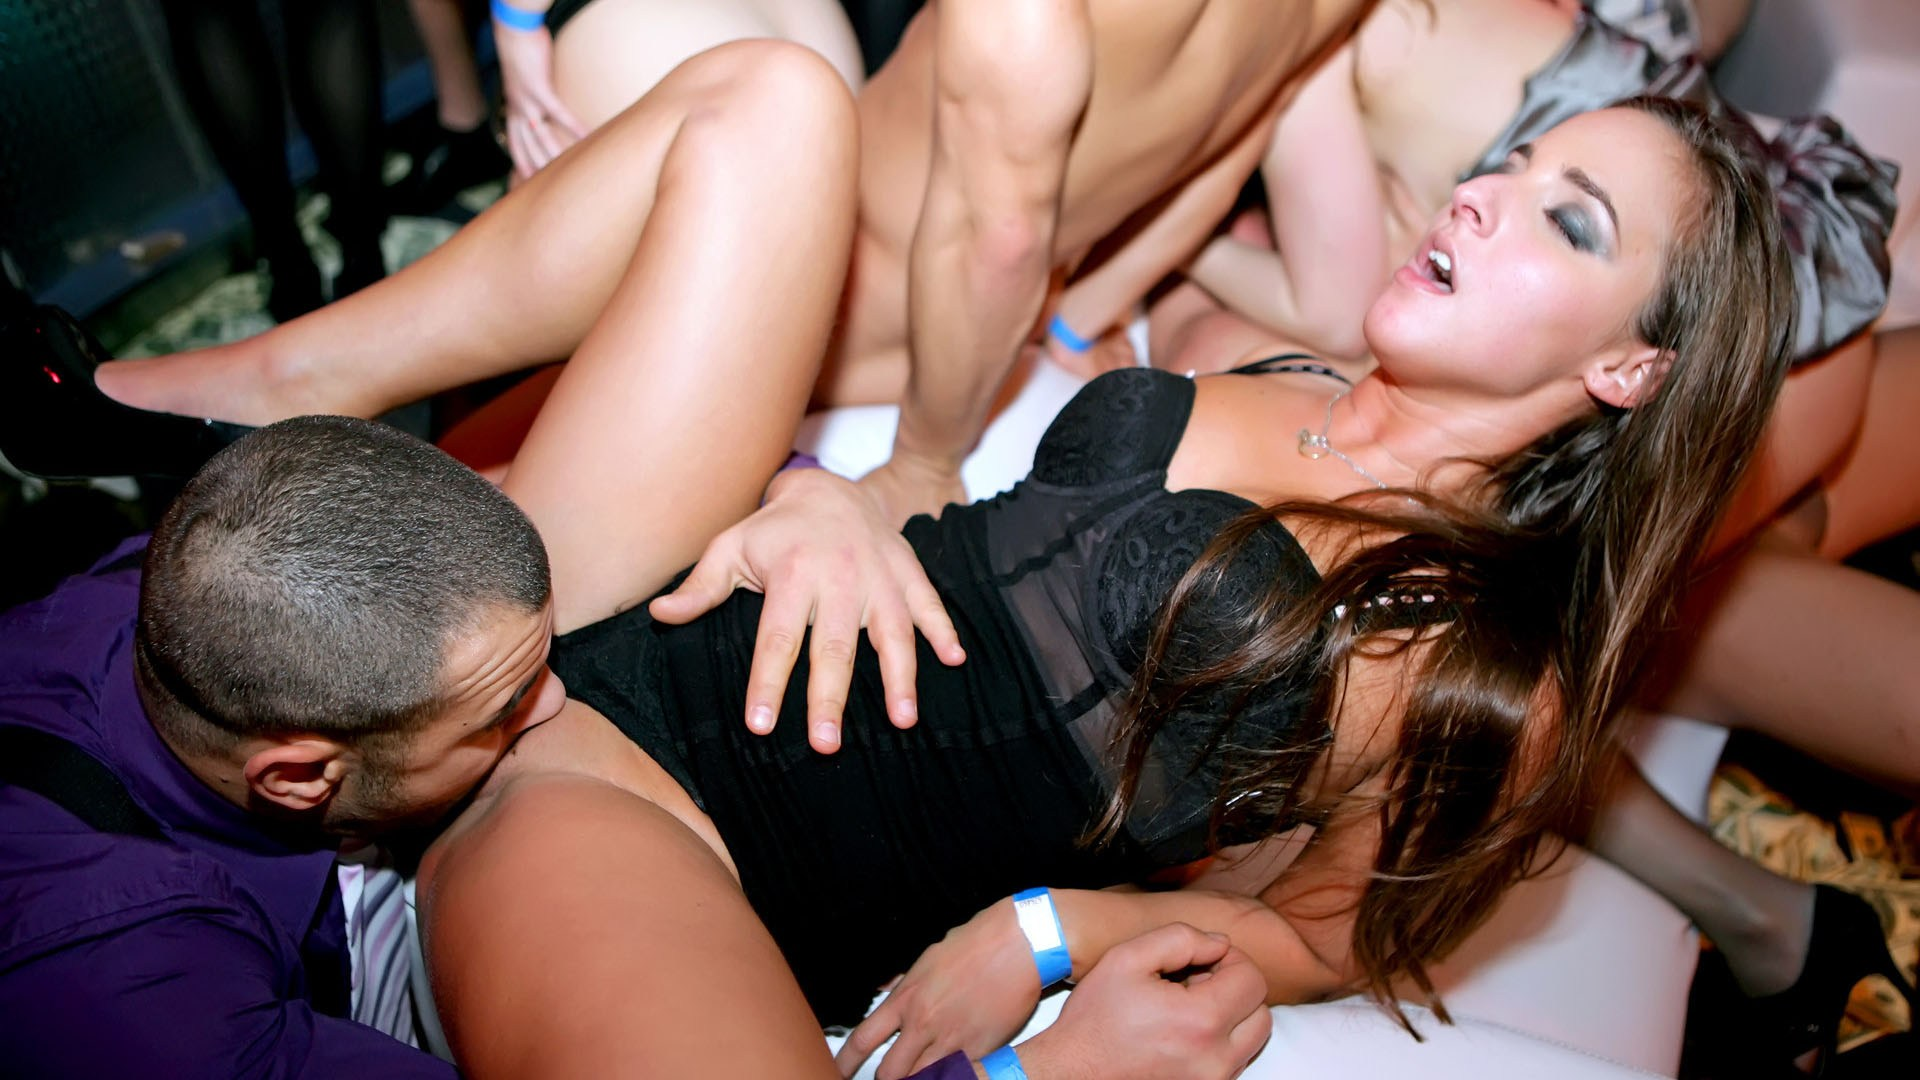 Free video on sex party